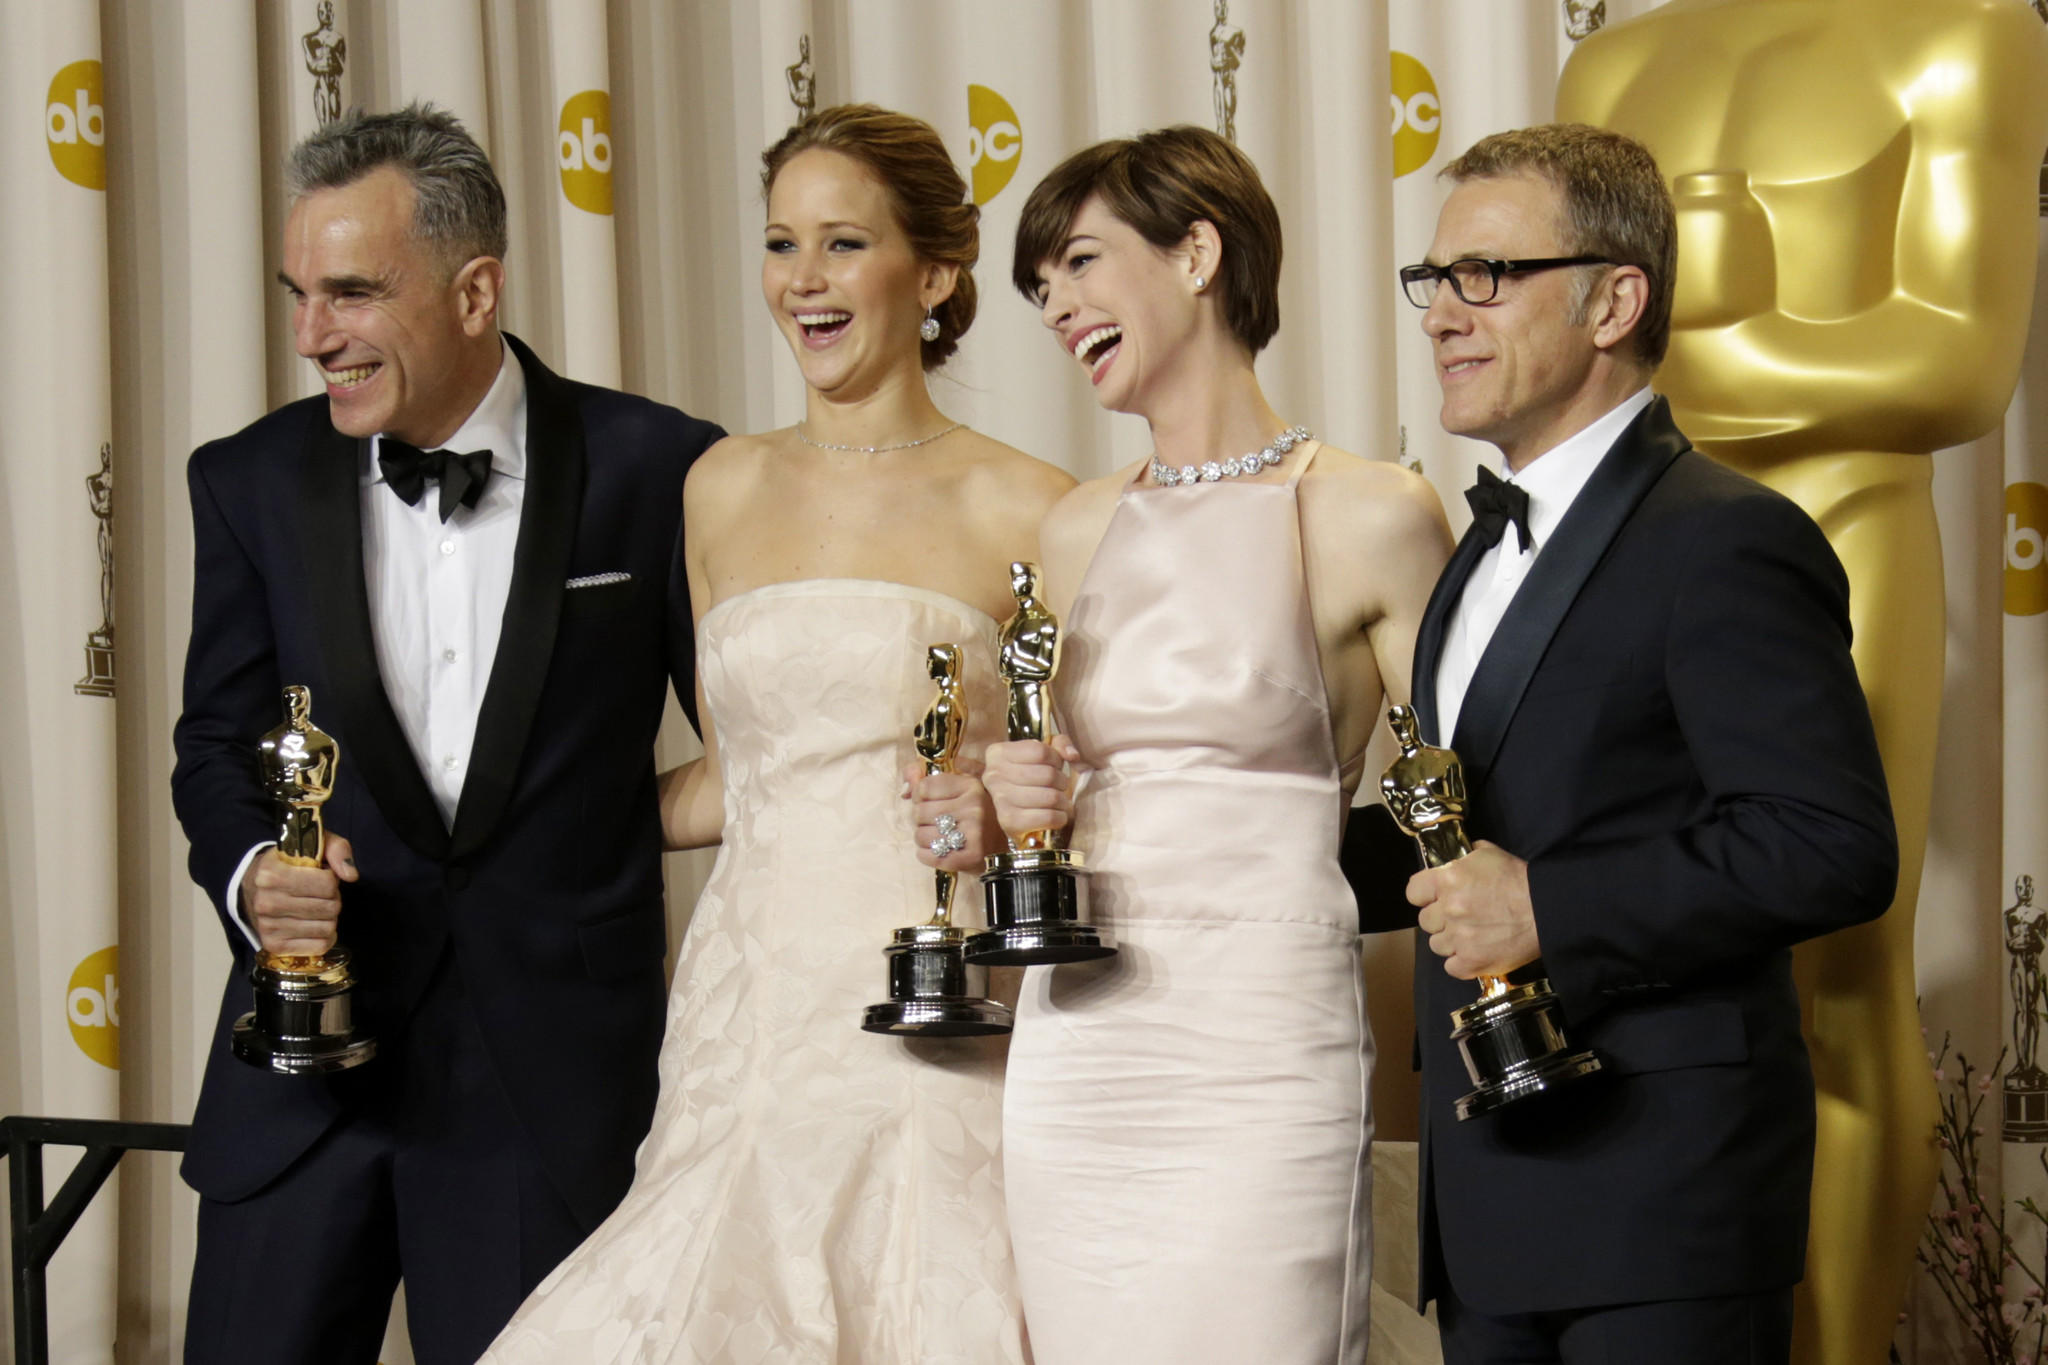 From left, Daniel Day-Lewis, Jennifer Lawrence, Anne Hathaway and Christoph Waltz backstage at the 85th annual Academy Awards.